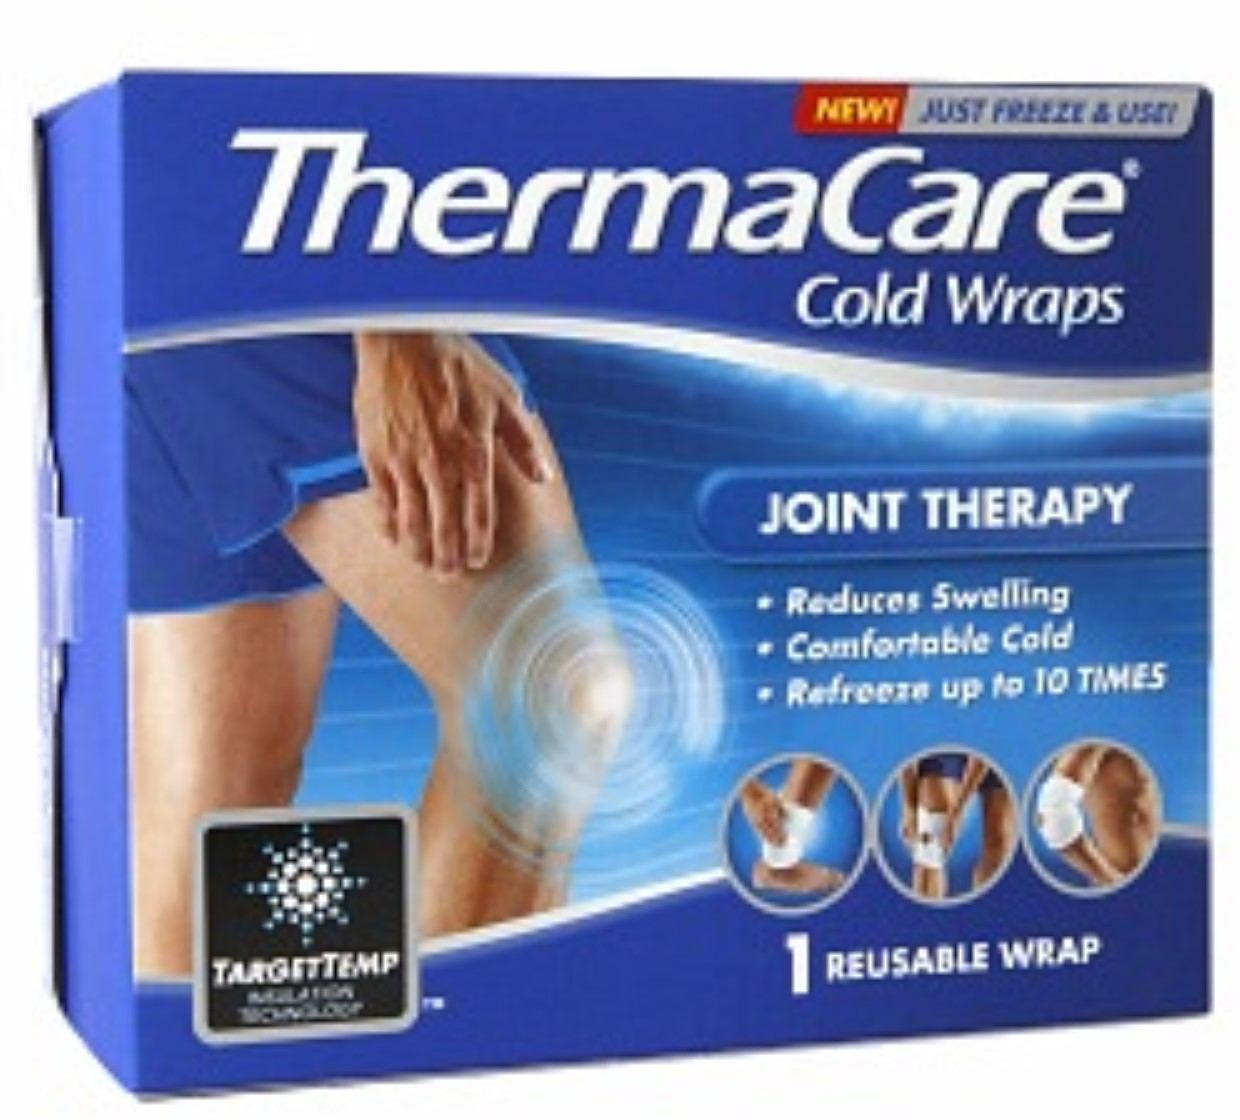 ThermaCare Joint Therapy (1 Count) Reusable Cold Wrap, Temporary Relief of Swelling, Muscular, Joint Pains, Refreeze Up To 10 Times